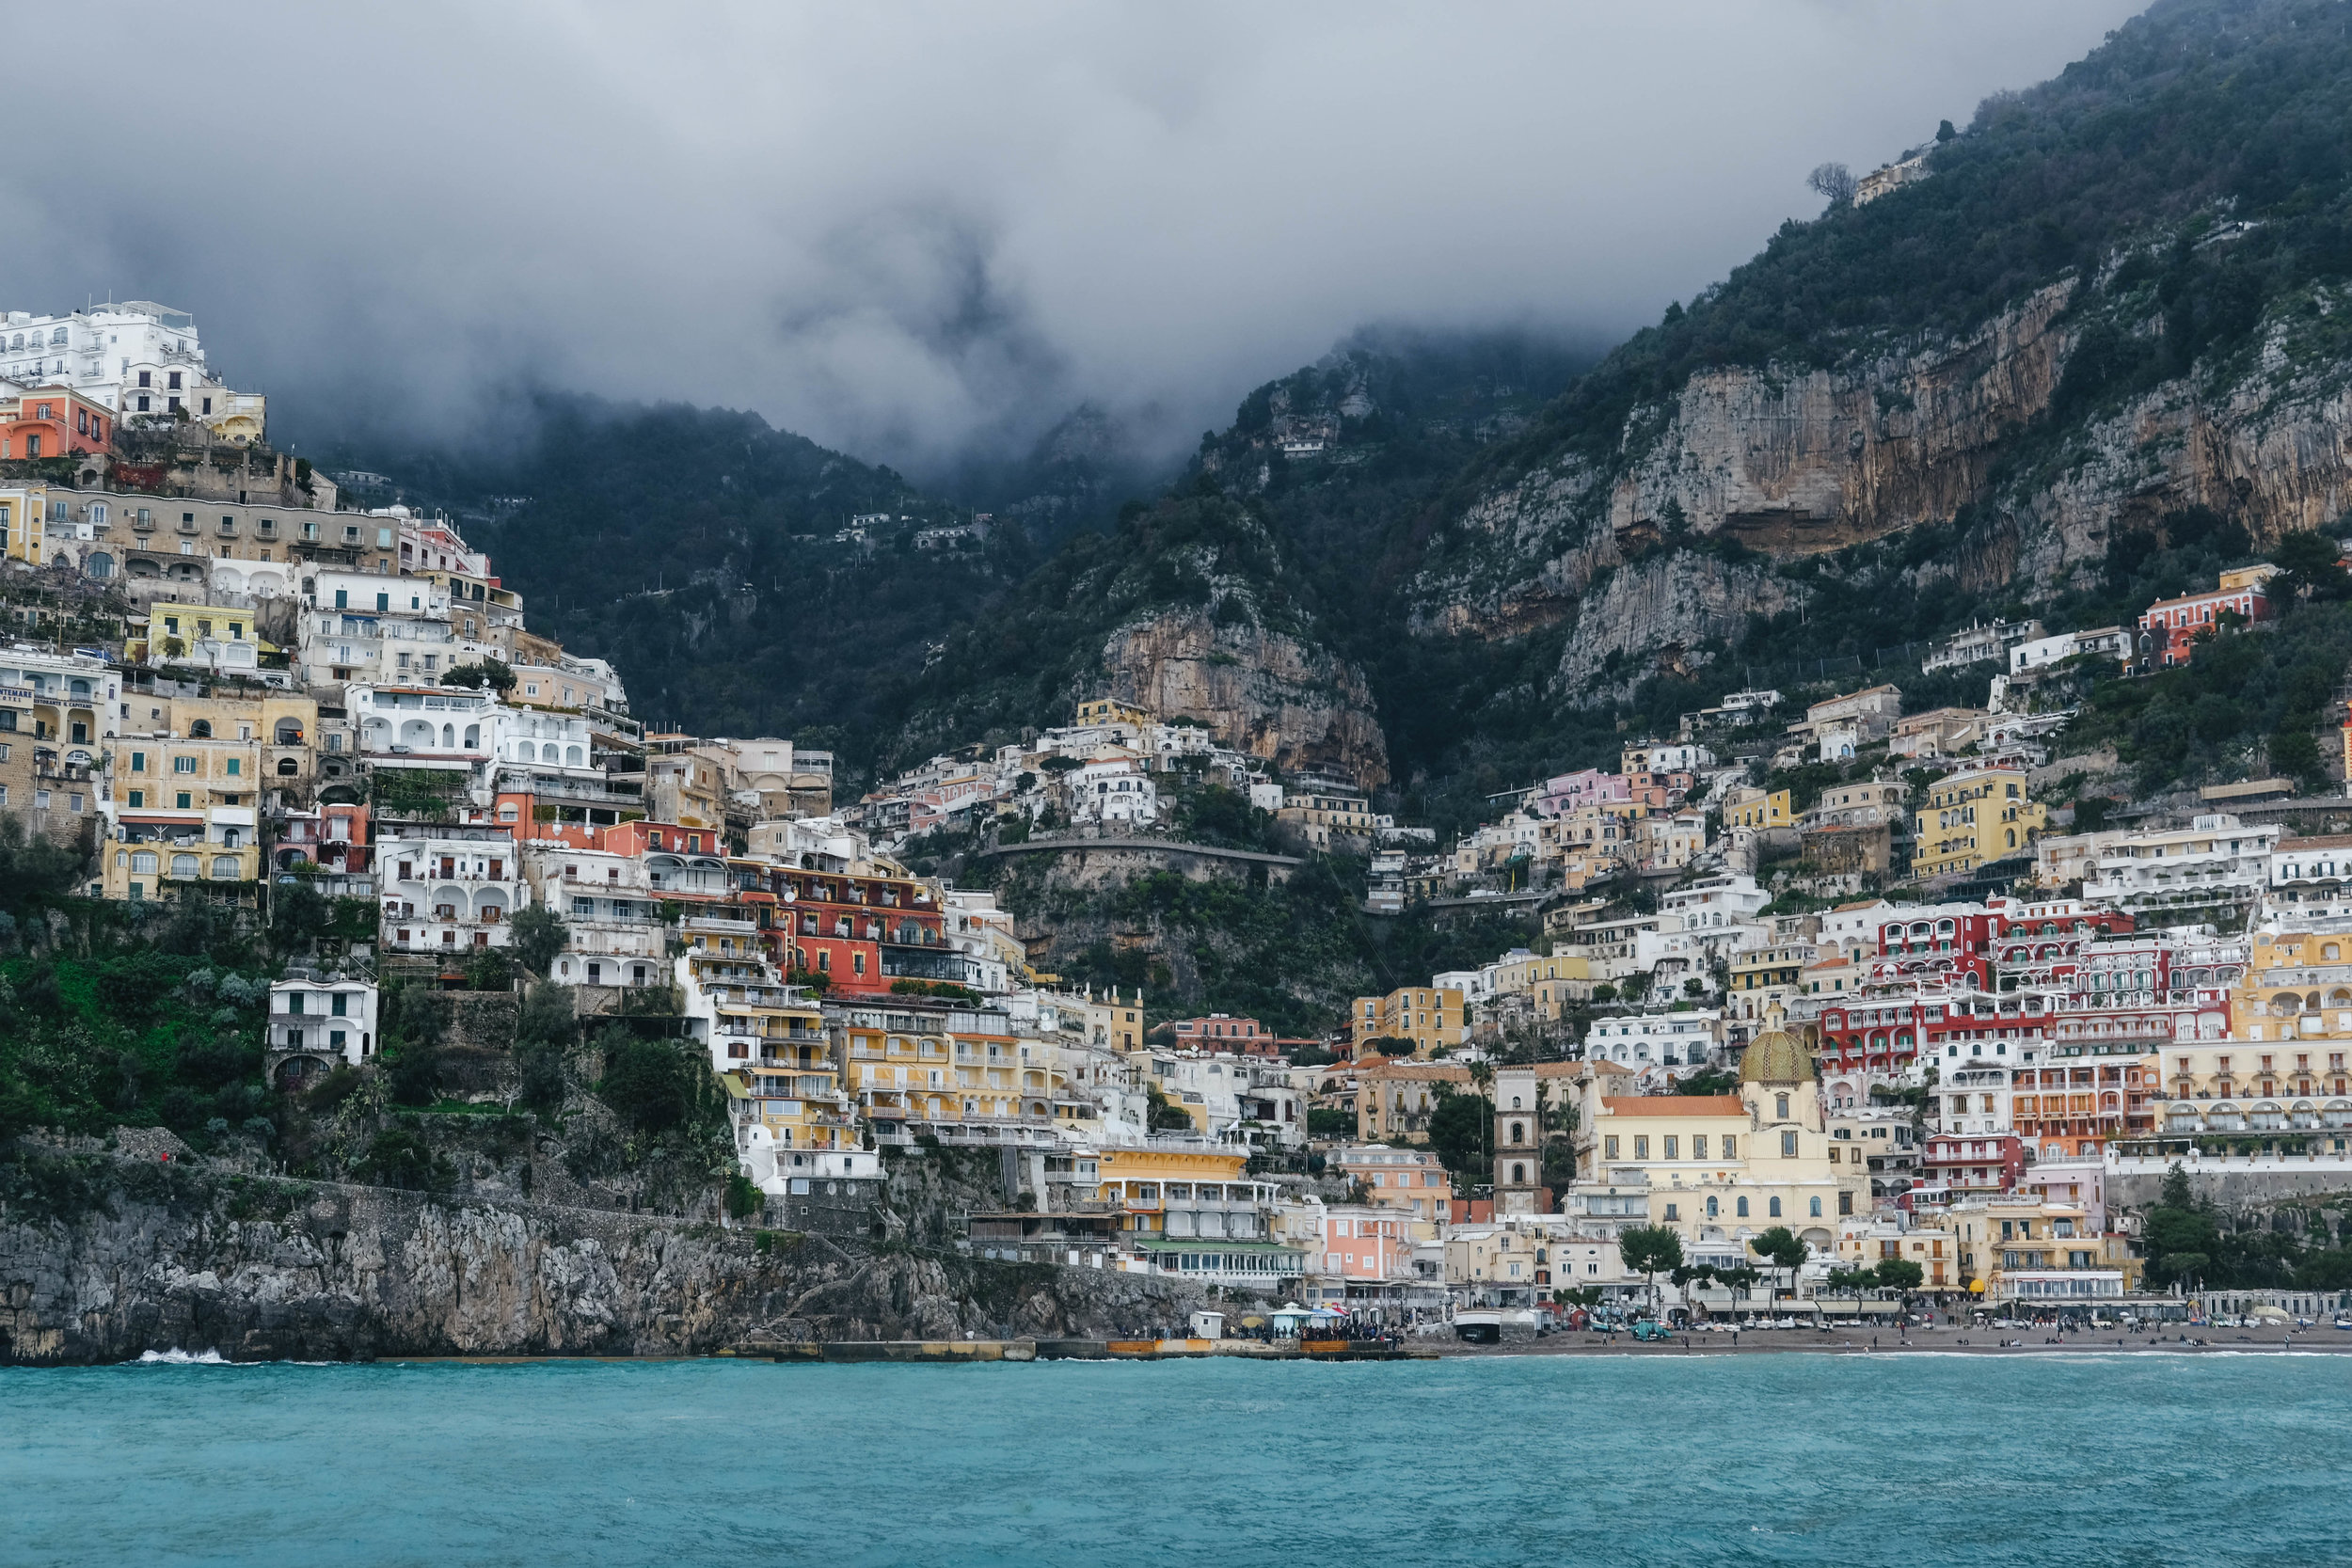 "<p style=""font-family:brandon-grotesque;font-weight:500; font-size:11px; text-center:left; color:light grey;letter-spacing: 1px"">MARCH 29, 2018 • 😳� • �Positano, Italy 🇮🇹</p>"